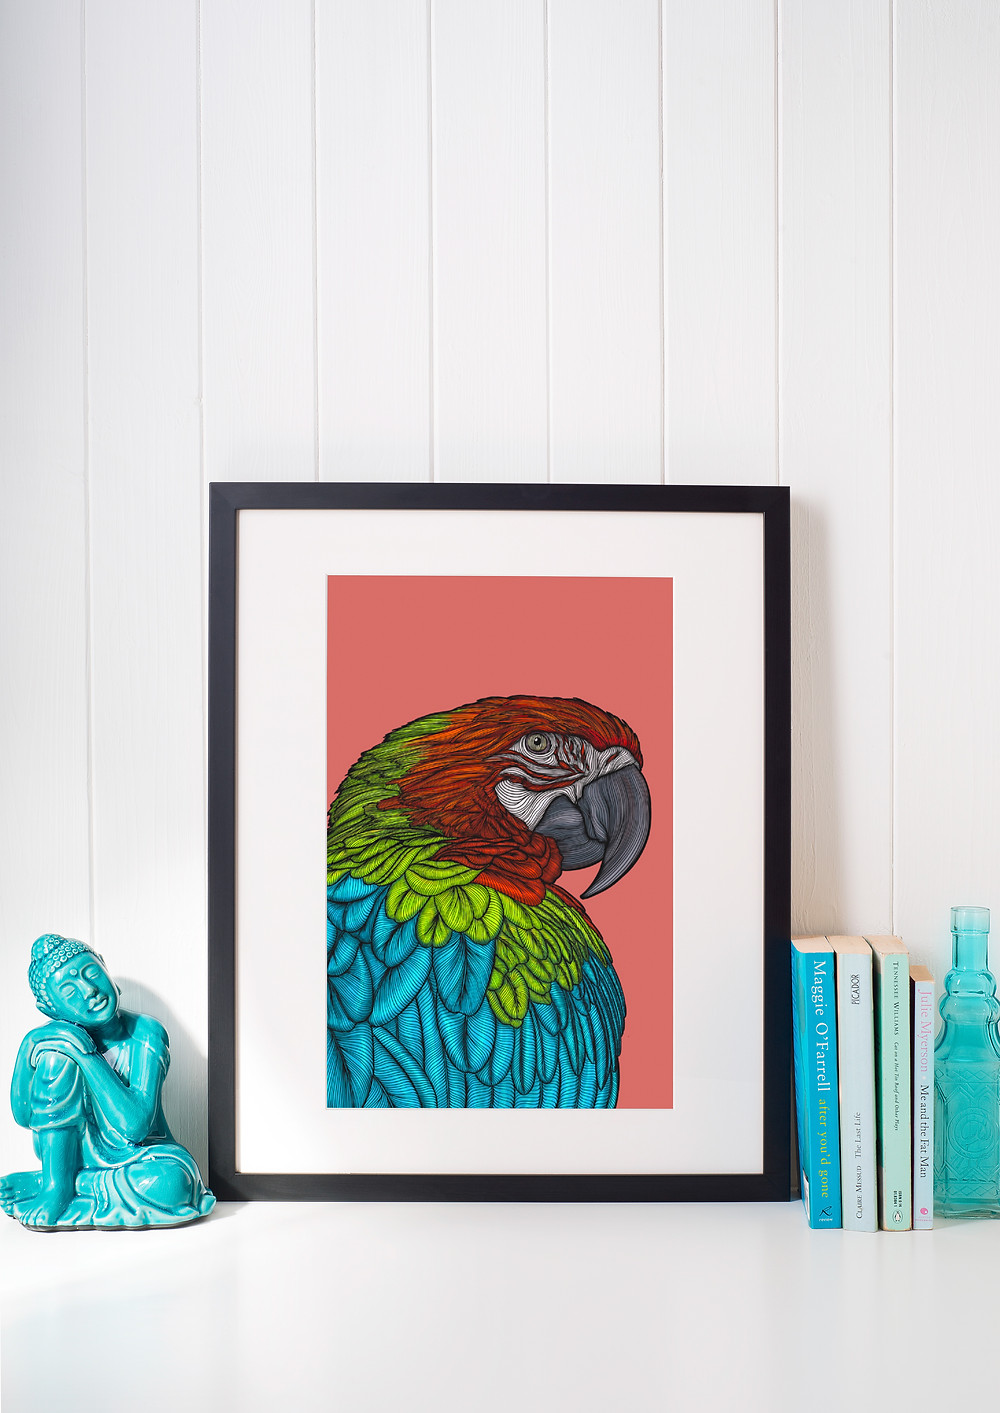 Contour drawing of a Macaw in a large Black Frame on a shelf with books and a small sculpture